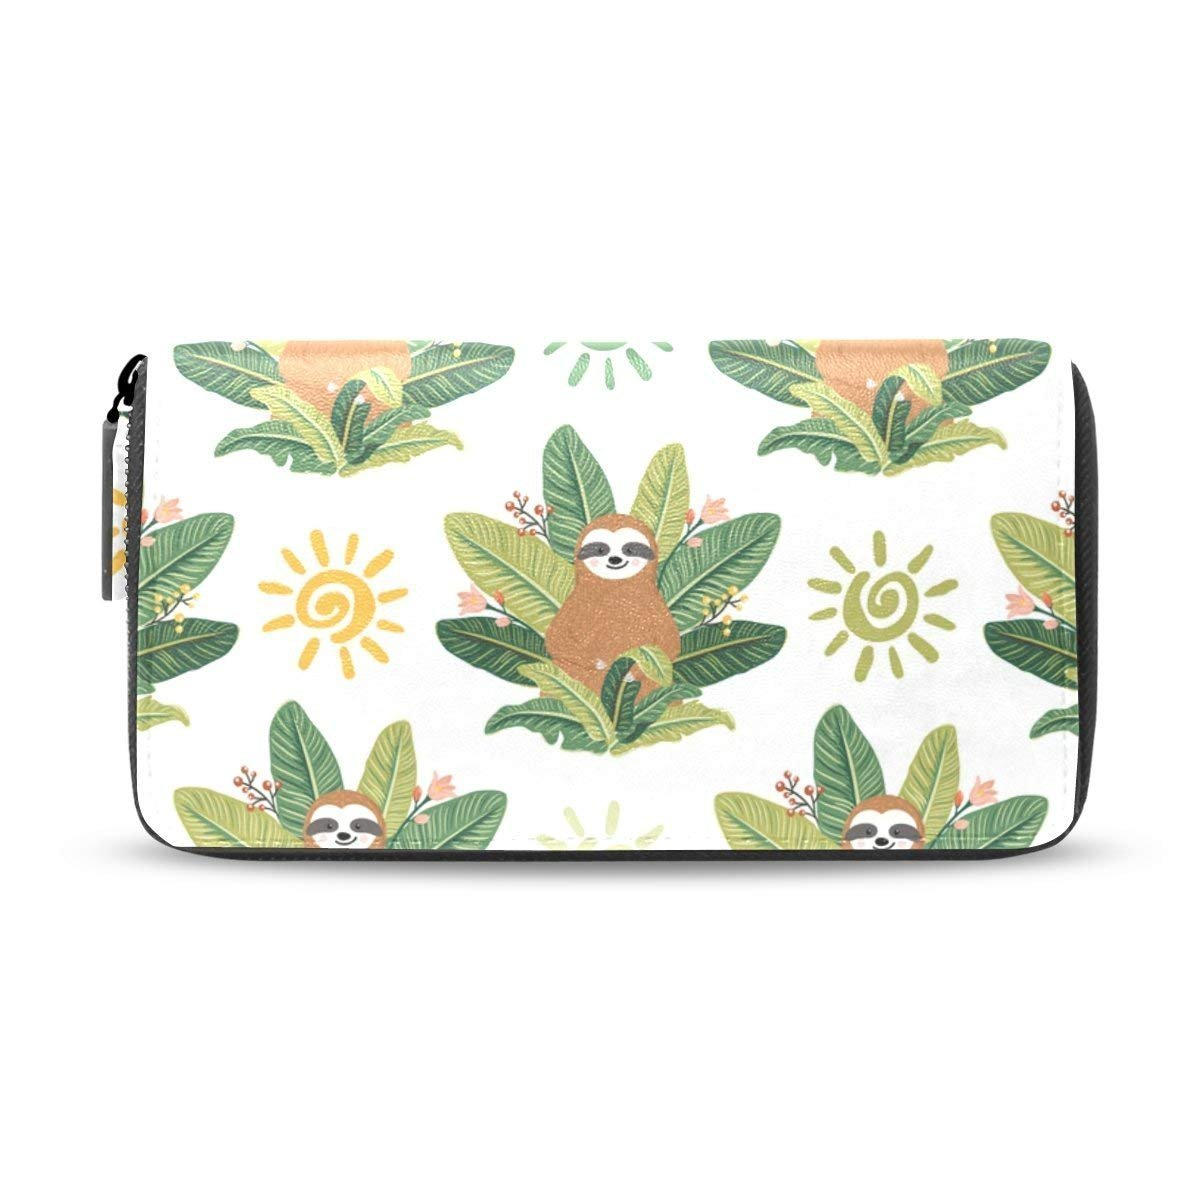 Womens Wallets Sloth Tropical Leaves Leather Long Clutch Purse Handbag